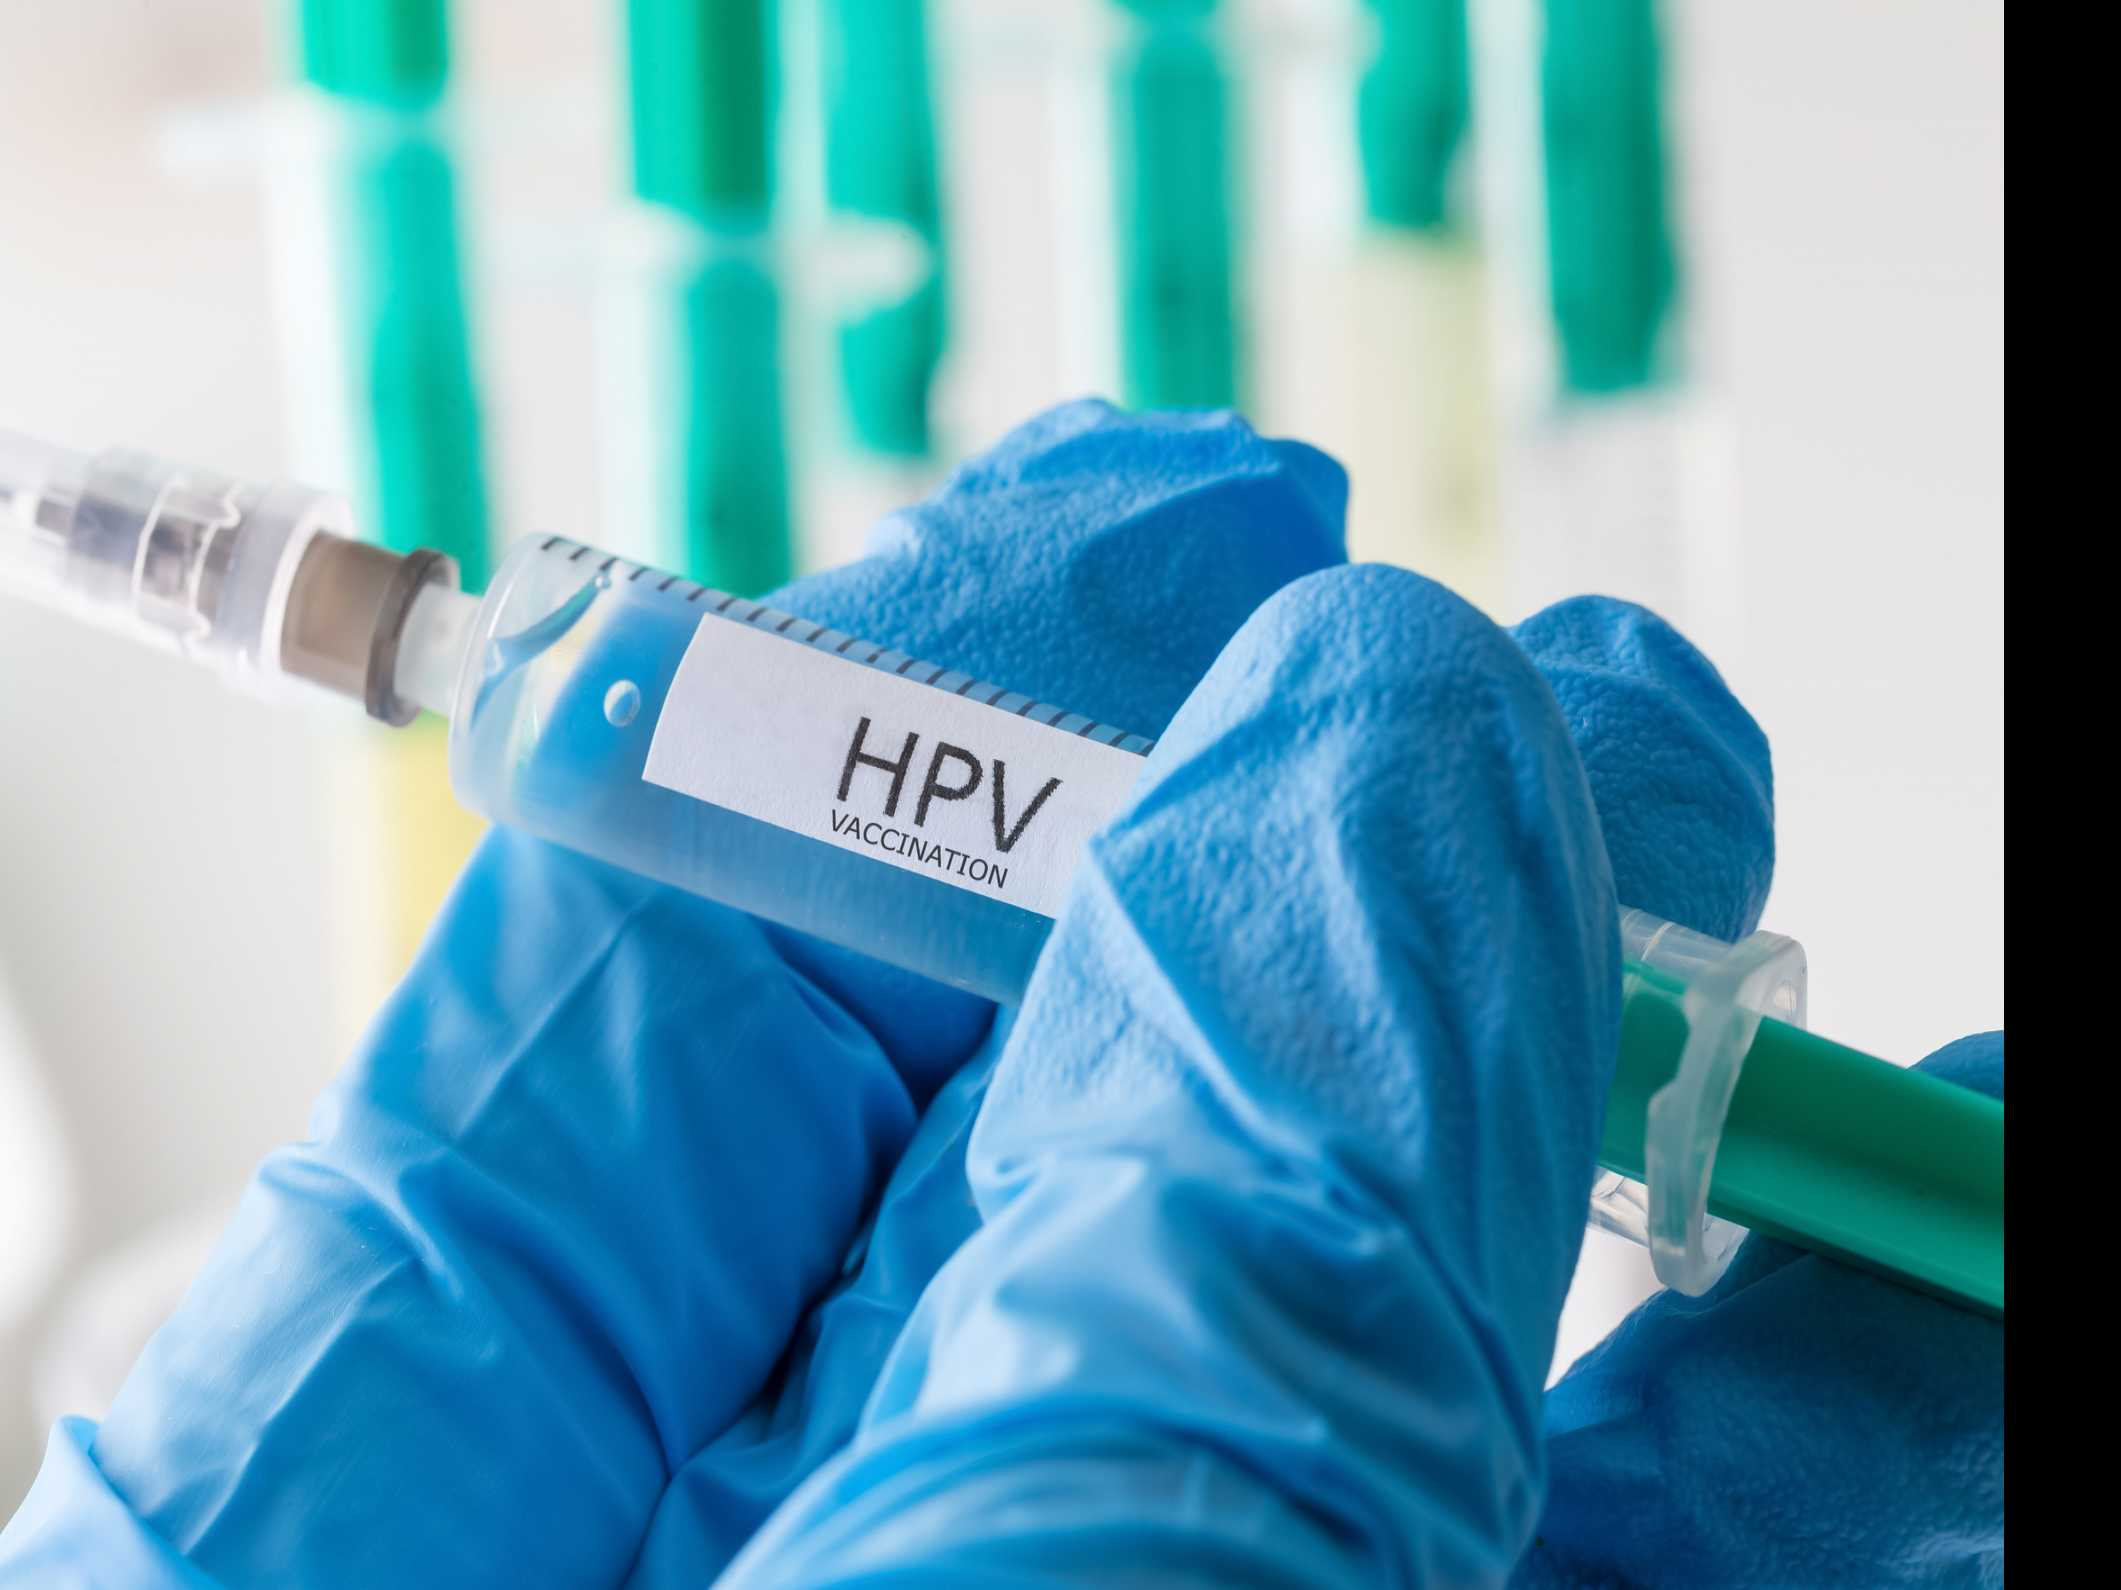 The HPV Vaccine: To Vaccinate, or Not to Vaccinate?